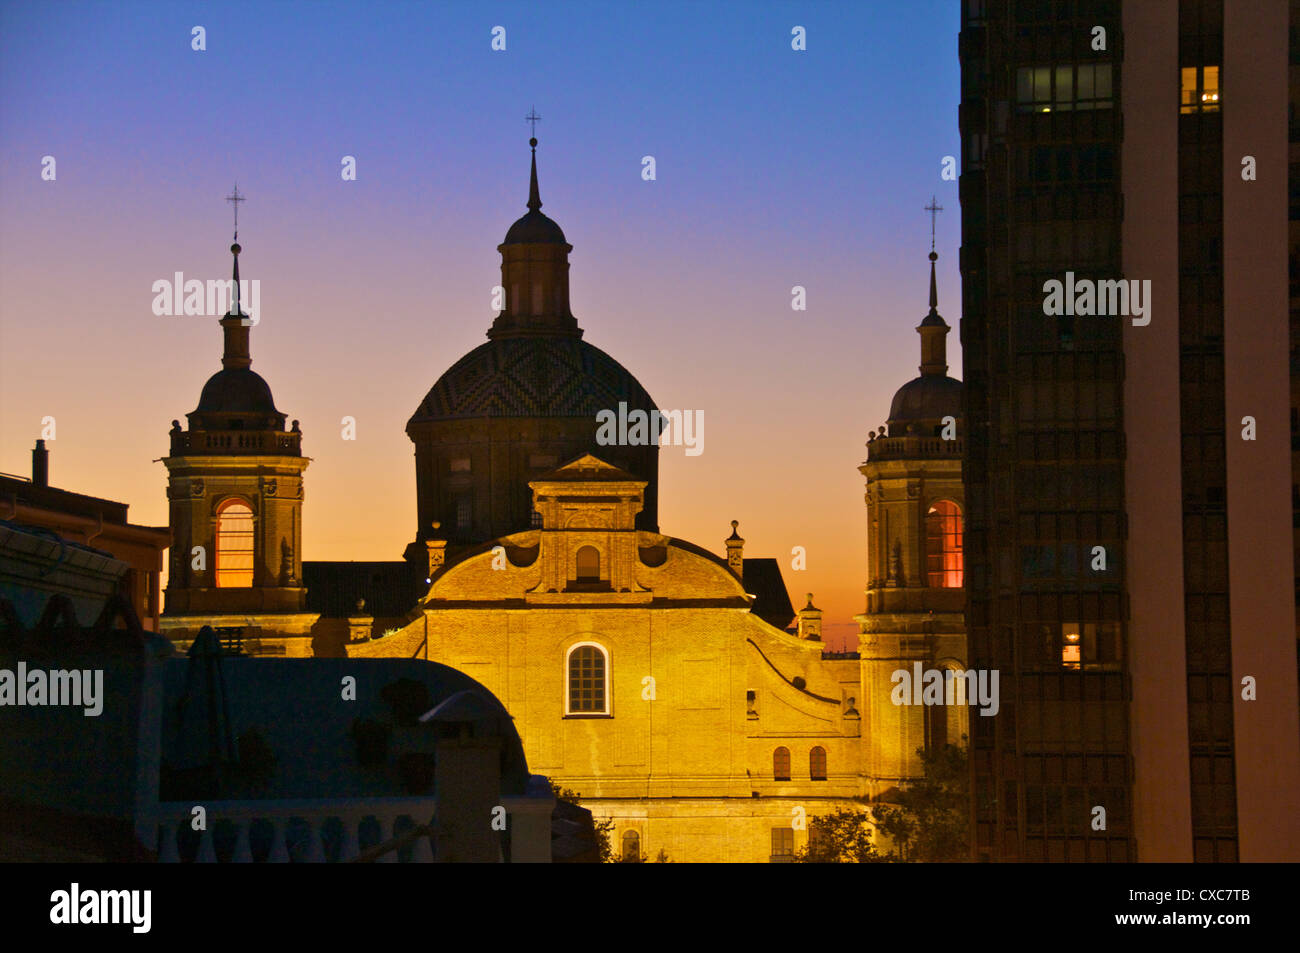 Saint Miguel de los Navarros church, Mudejar church dating from the 14th and 15th centuries, Saragossa (Zaragoza), - Stock Image